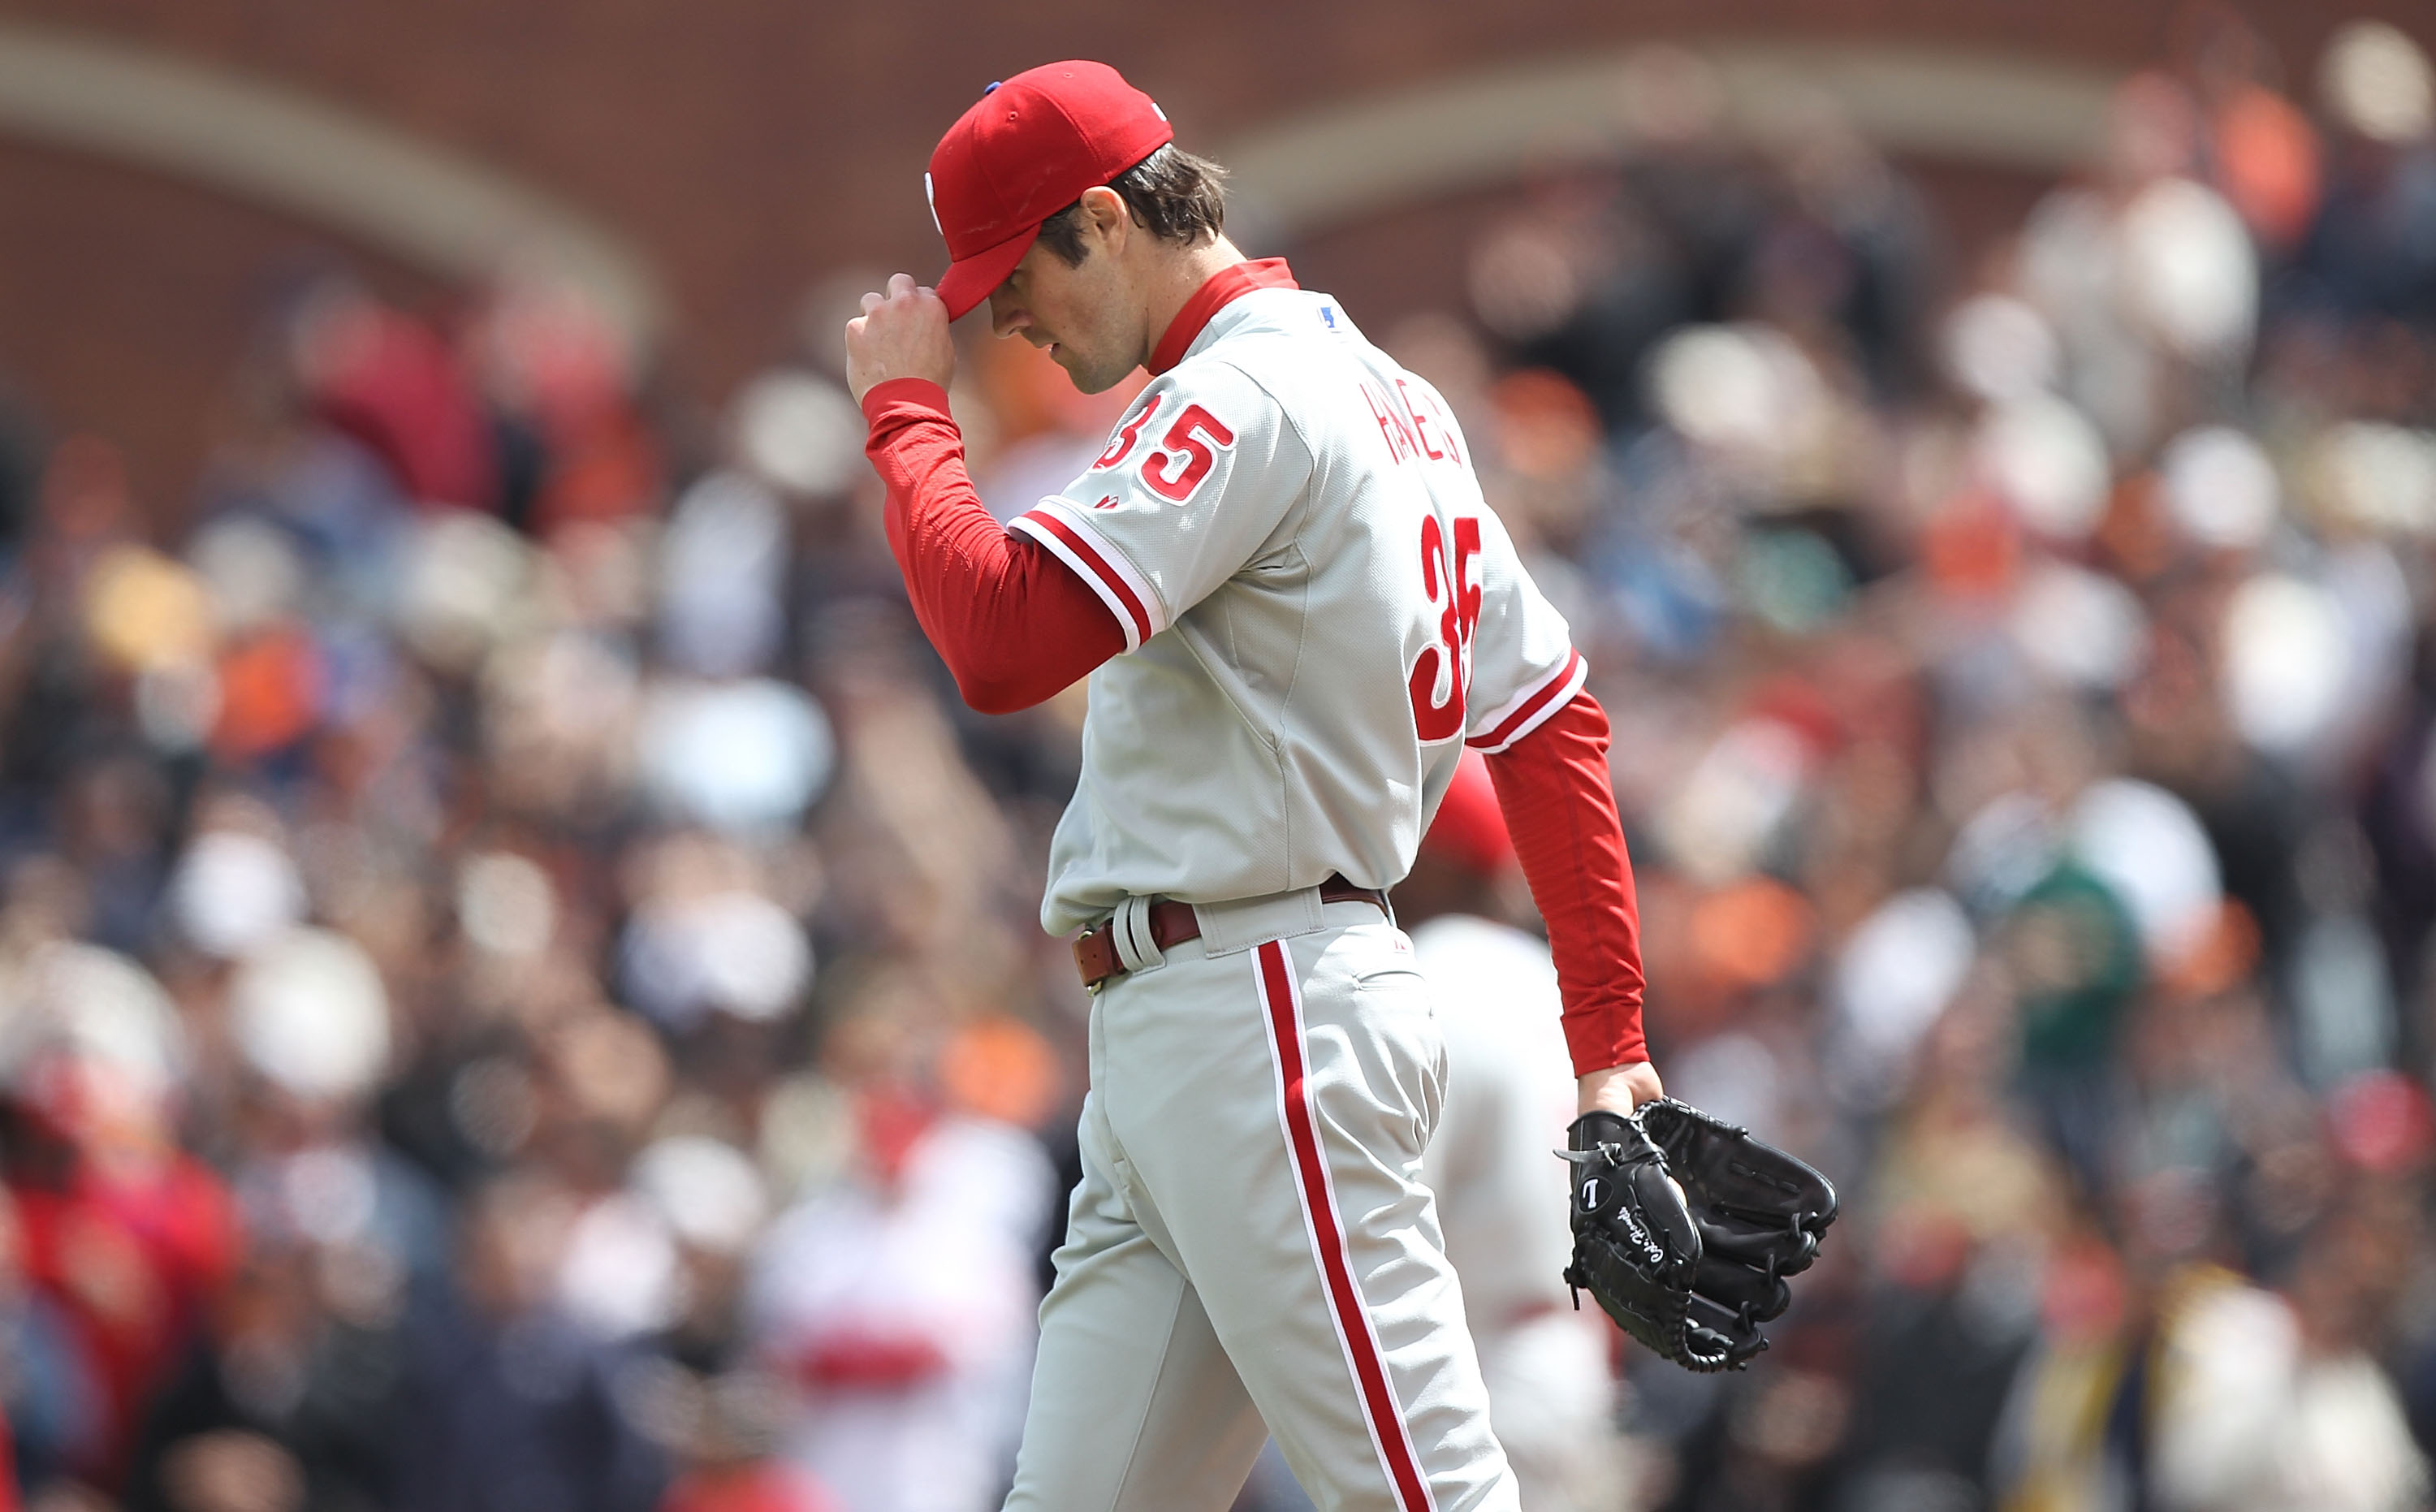 SAN FRANCISCO - APRIL 28:  Cole Hamels #35 of the Philadelphia Phillies looks on after walking in a run in the sixth inning against the San Francisco Giants during an MLB game at AT&T Park on April 28, 2010 in San Francisco, California.  (Photo by Jed Jac